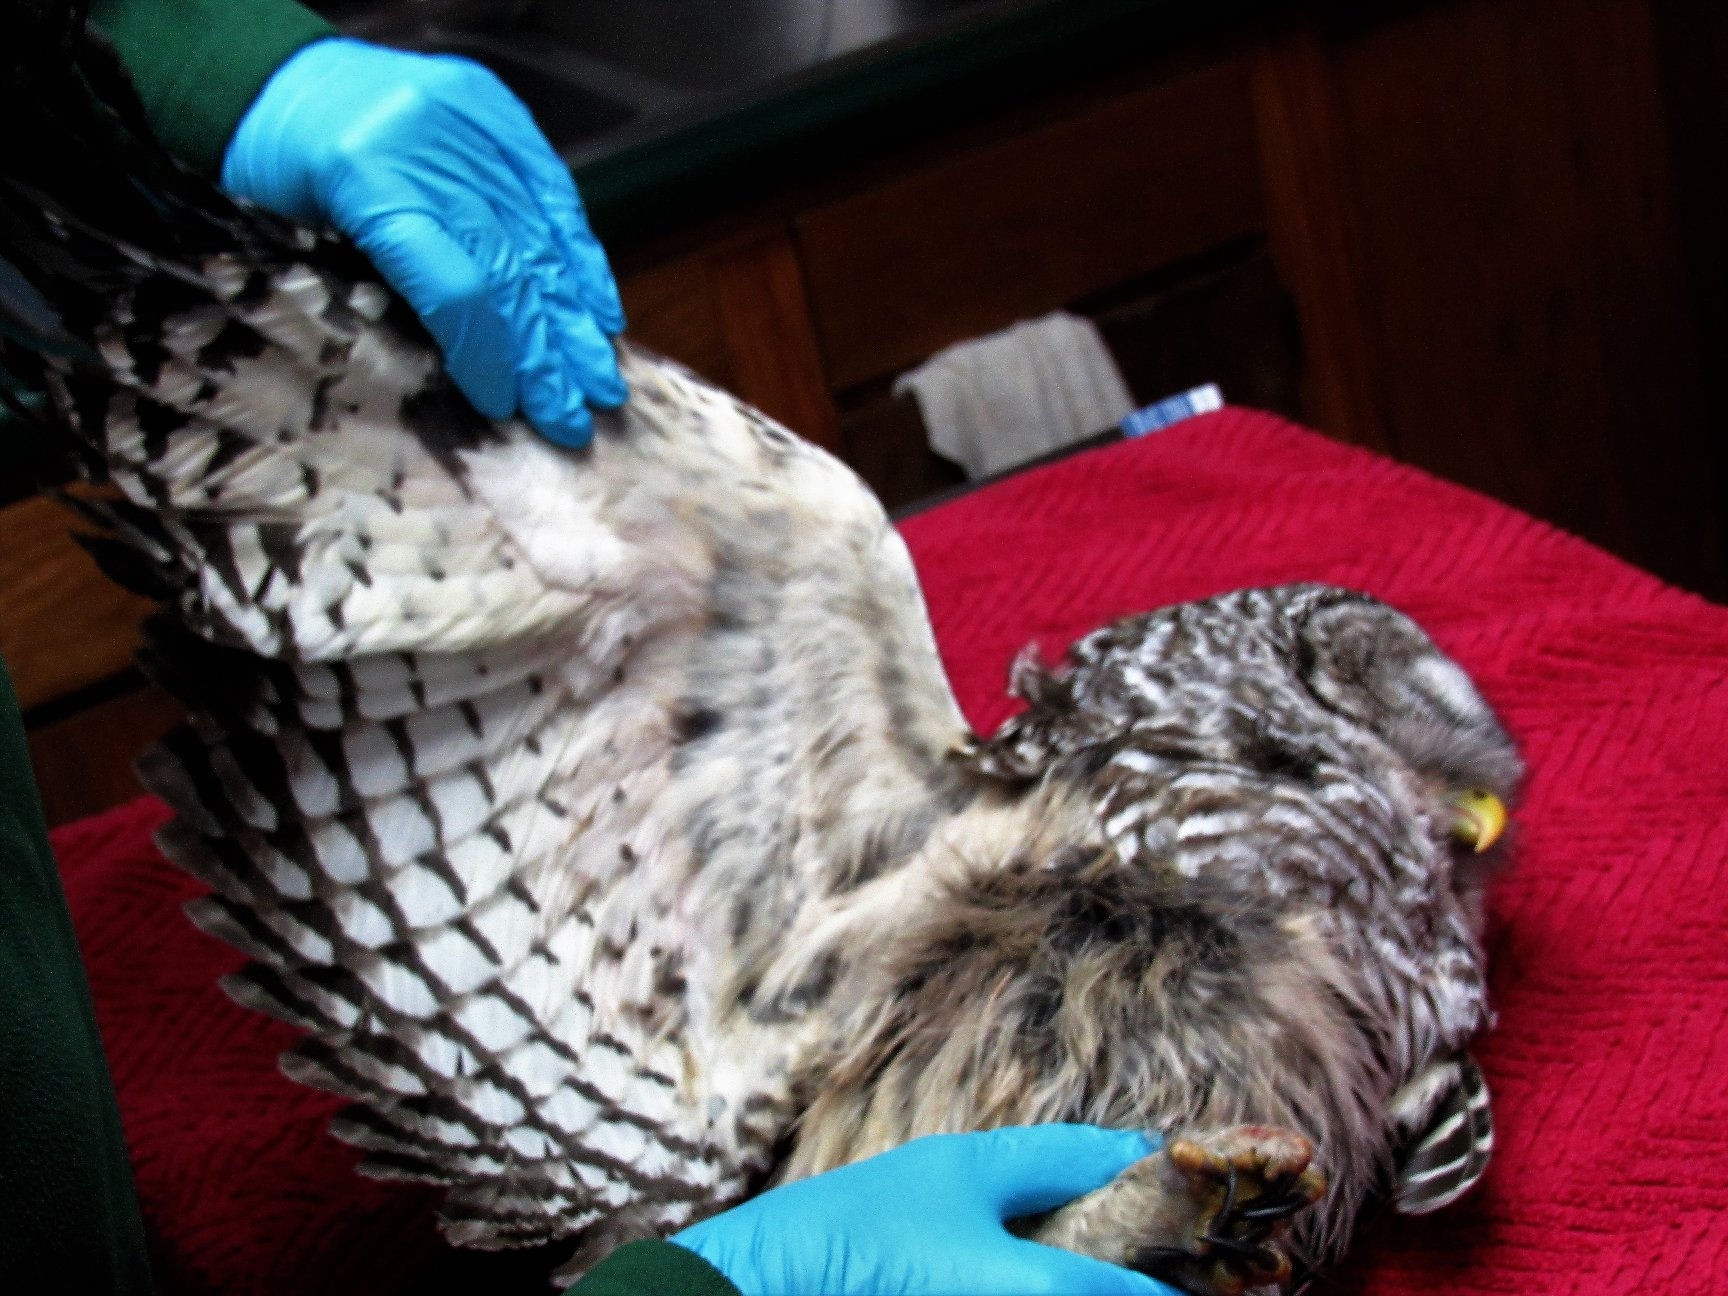 The owl has a wing fracture but it is recoverable.